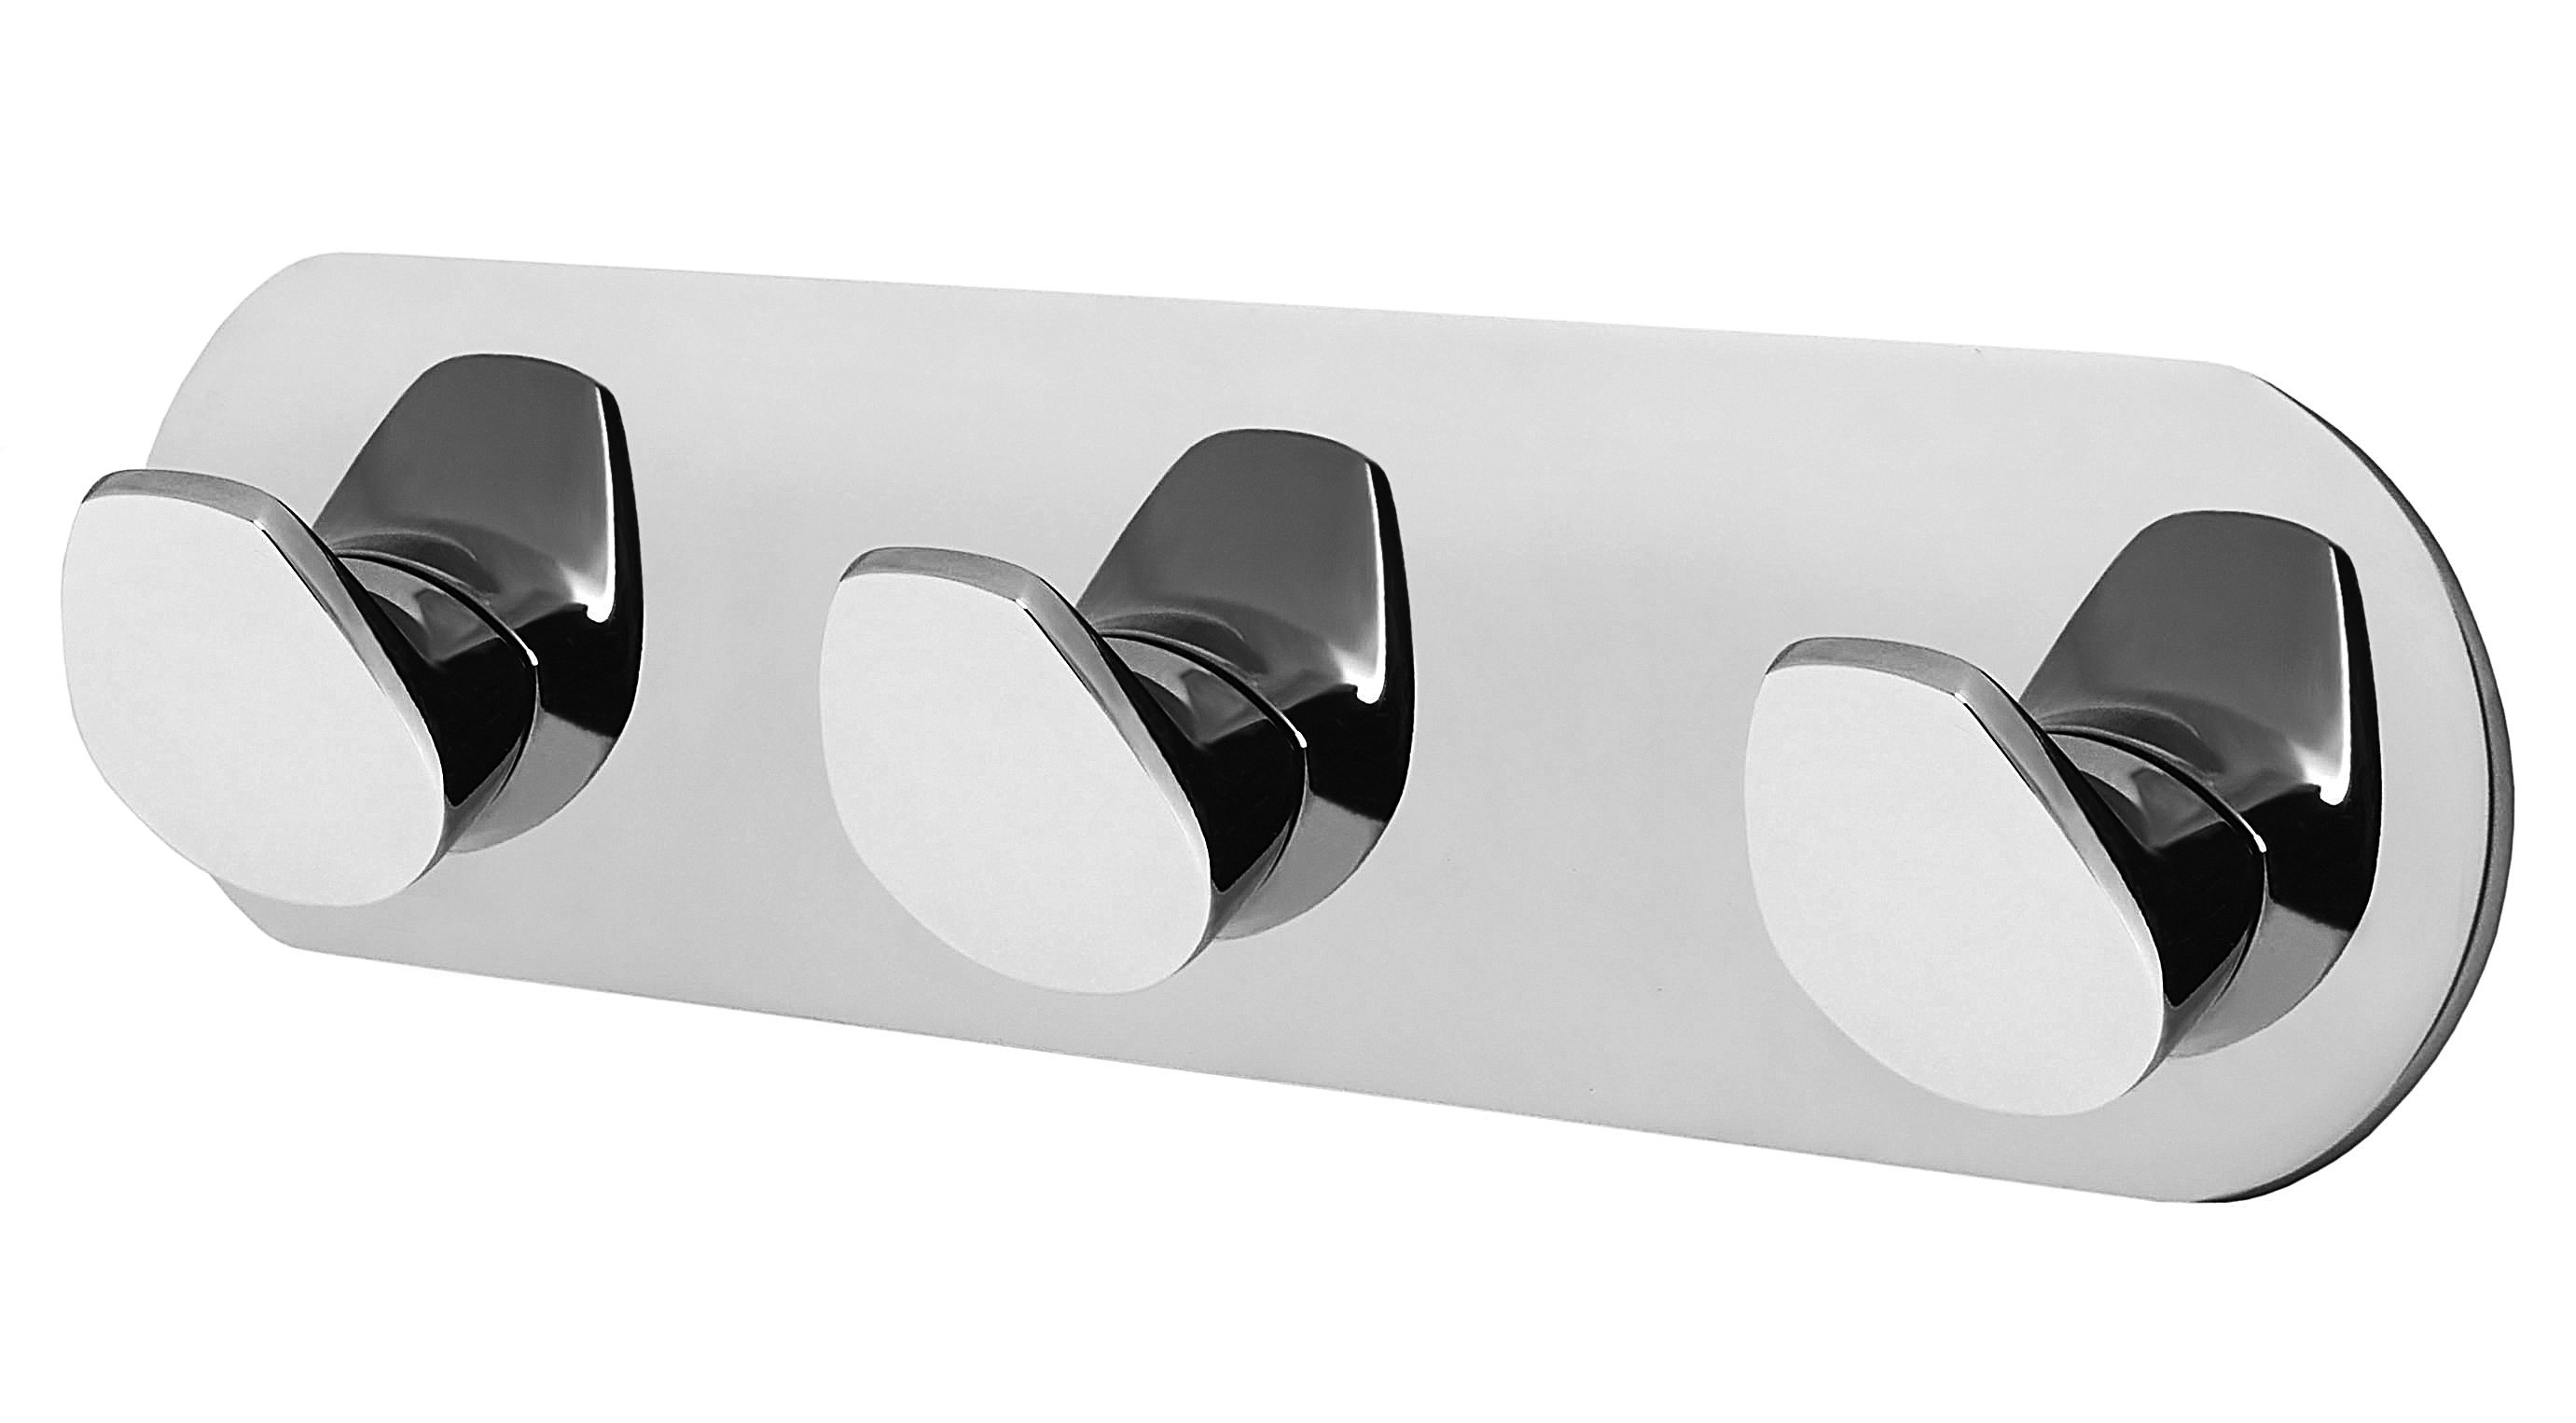 A5035700 Triple towel hook